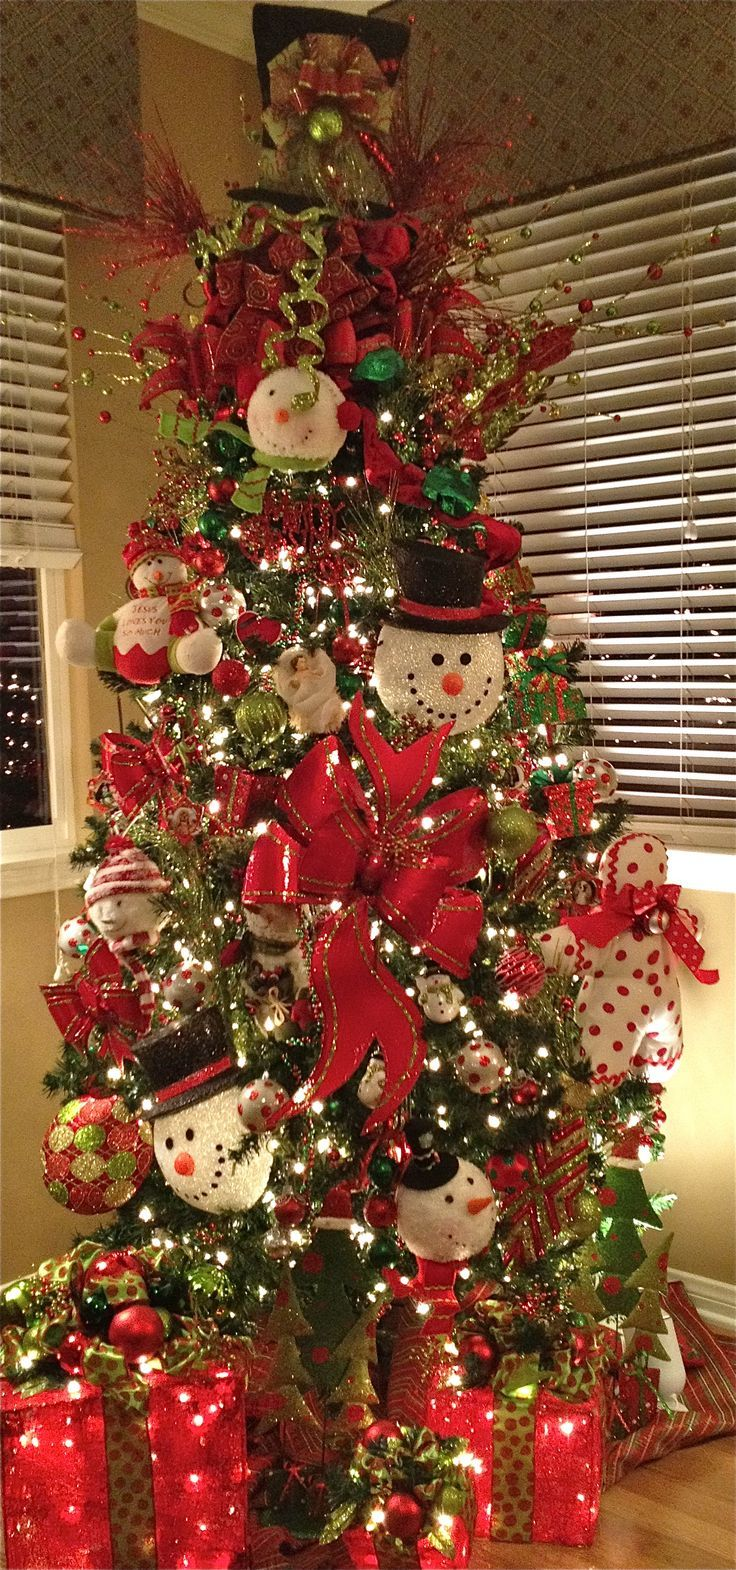 Christmas tree designs and decor ideas for 2014 15 for 2014 christmas tree decoration